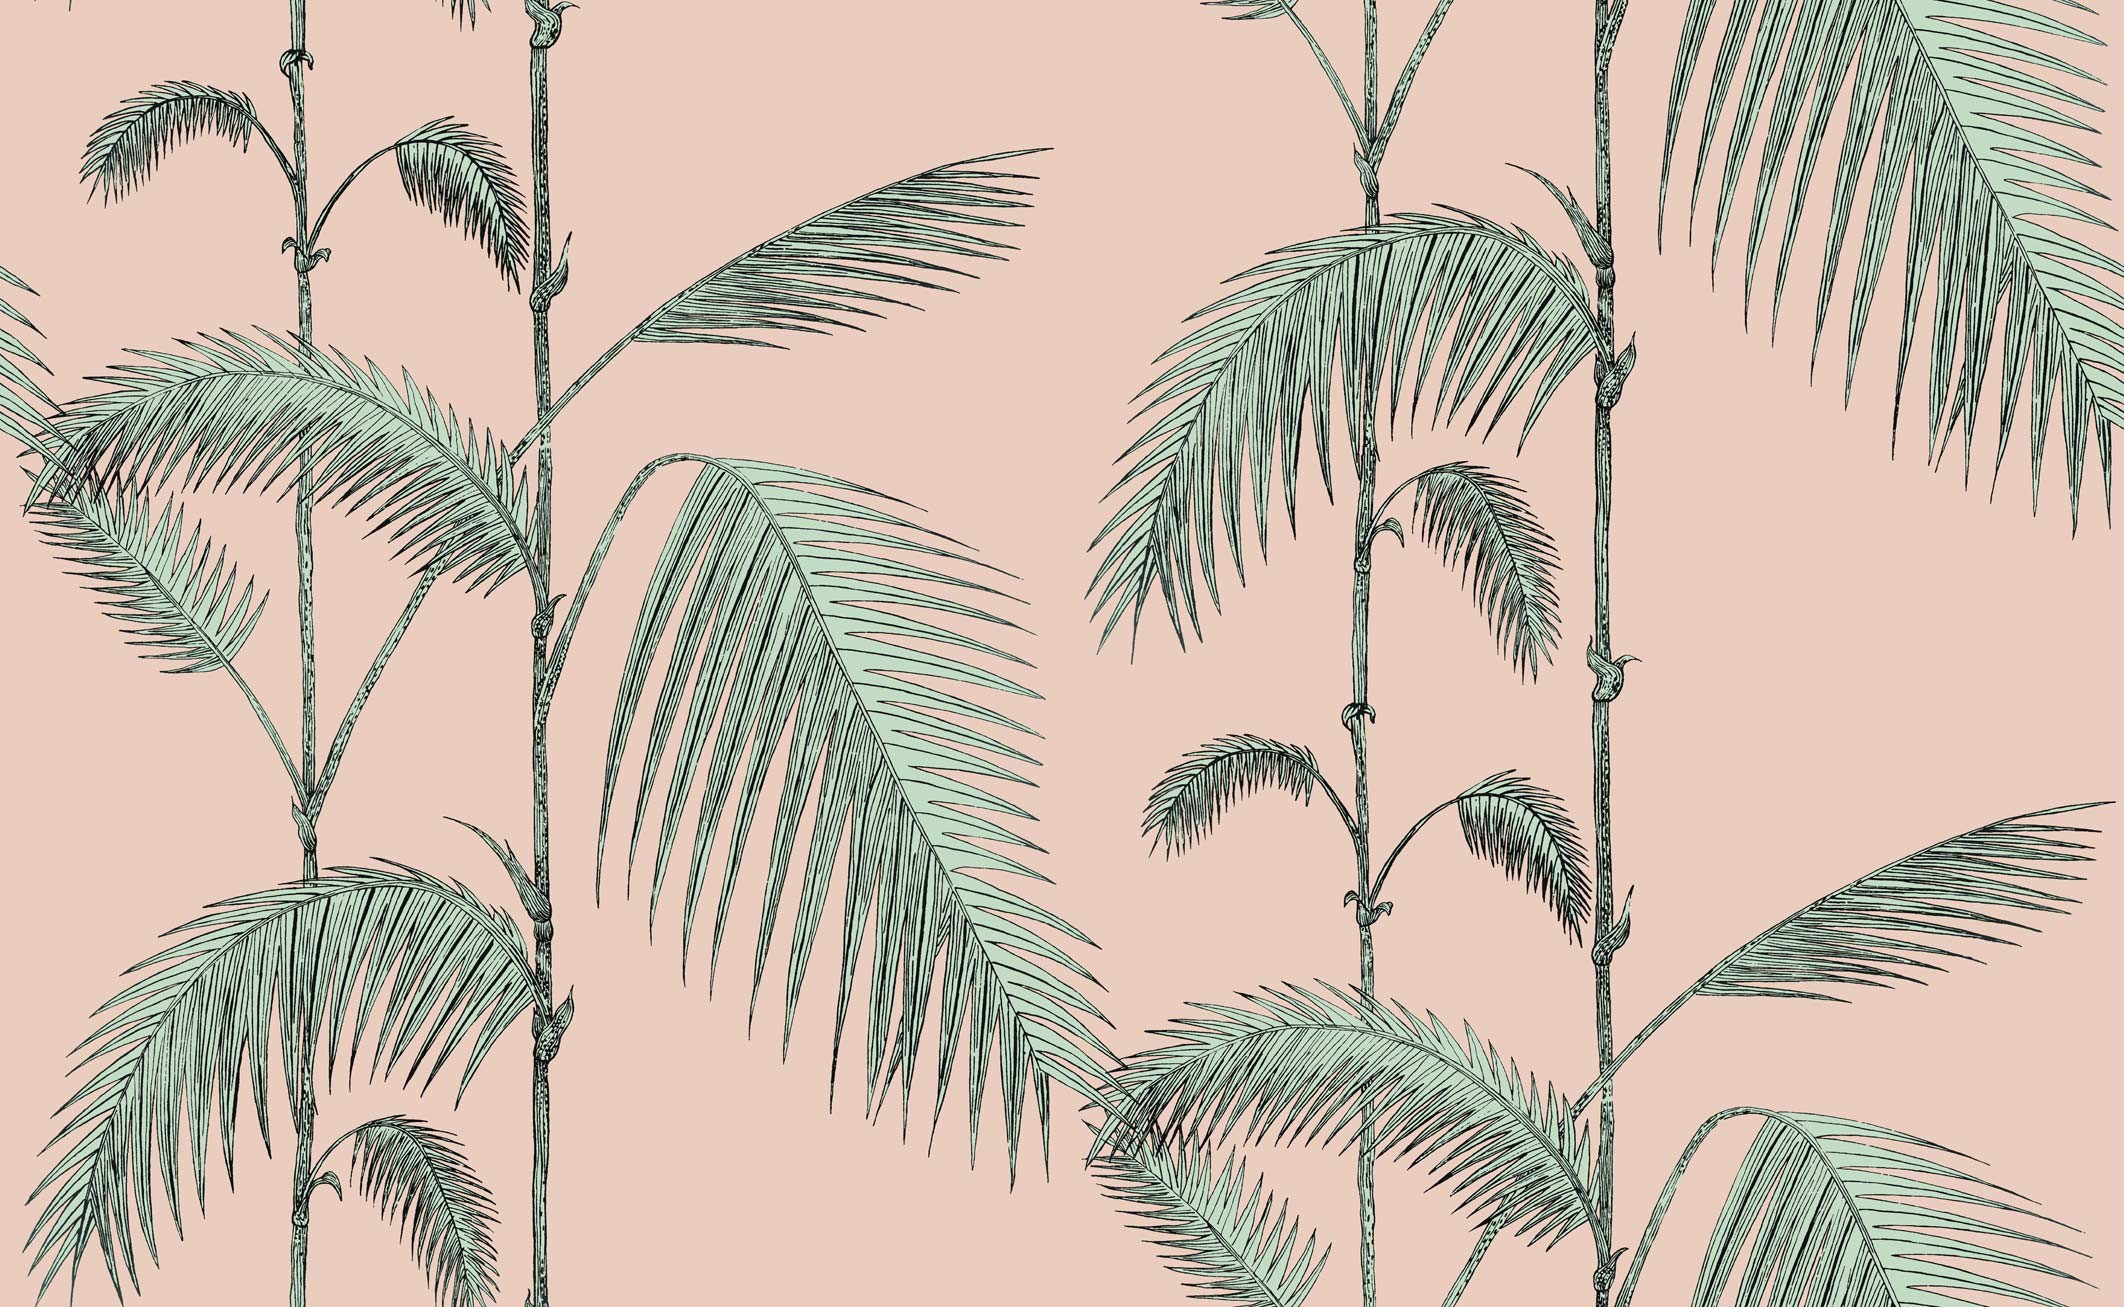 Palm Leaves Wallpaper Cole And Son Icons Palm Leaves 2124x1307 Wallpaper Teahub Io Leaves wallpapers, backgrounds, images— best leaves desktop wallpaper sort wallpapers by: palm leaves wallpaper cole and son